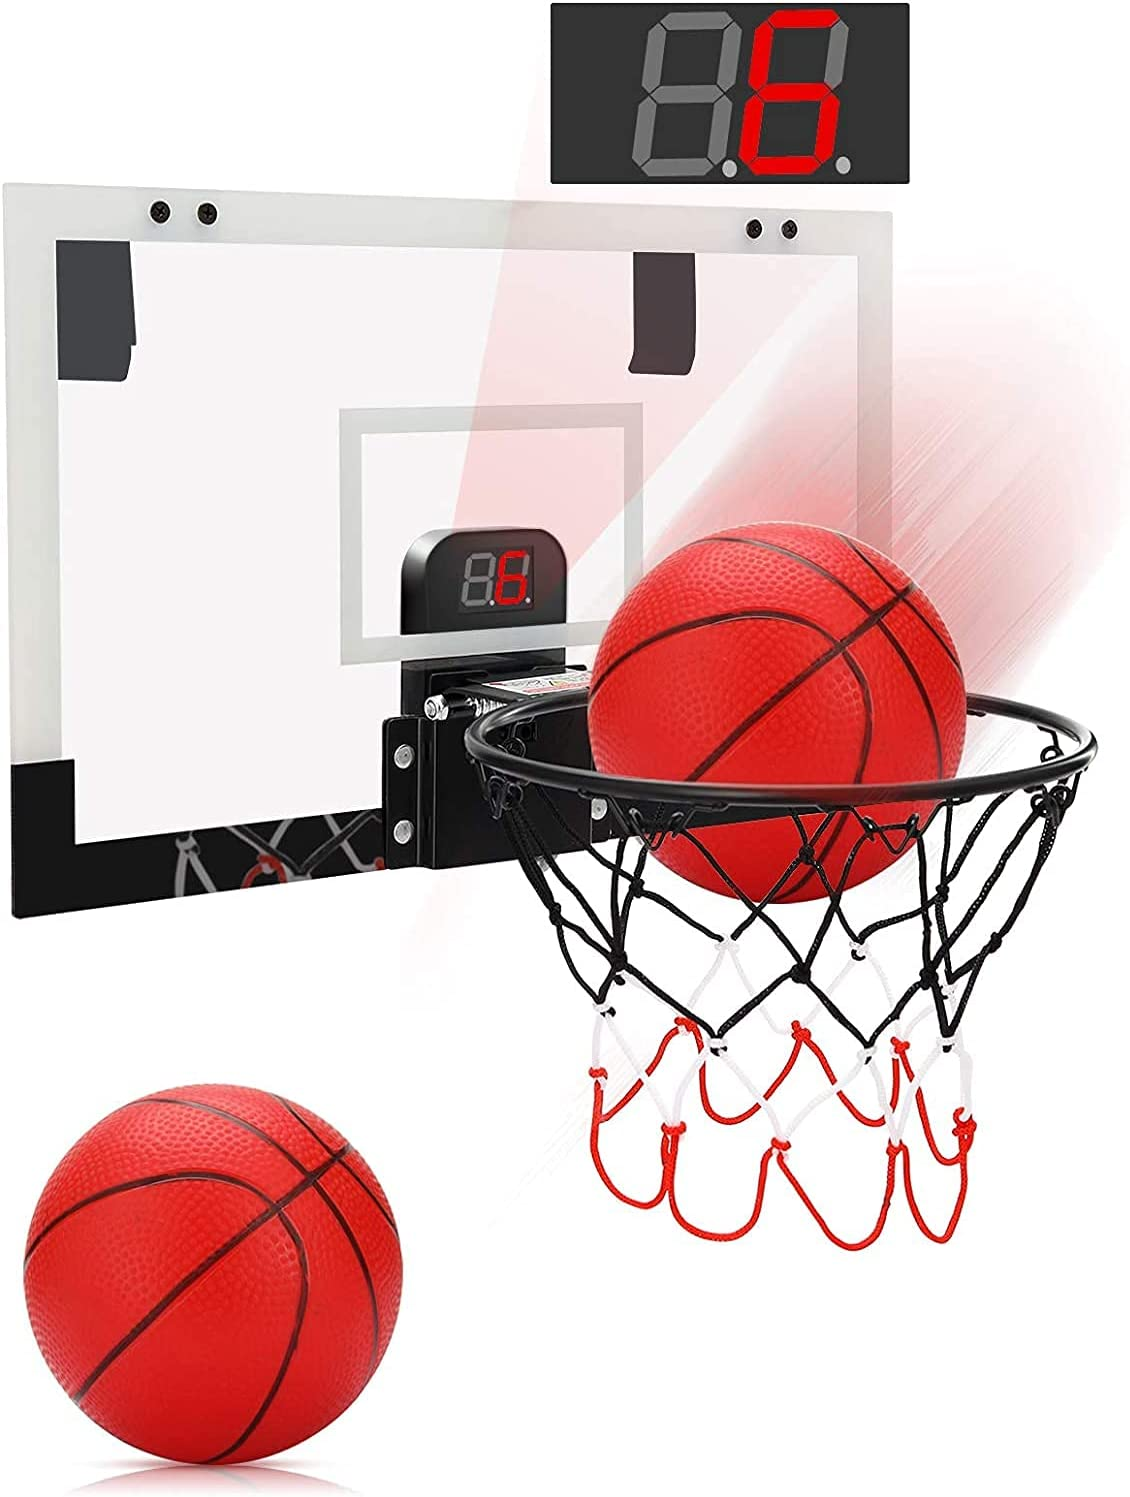 PELLOR Mini Basketball Hoop Set with Electronic Score Record and